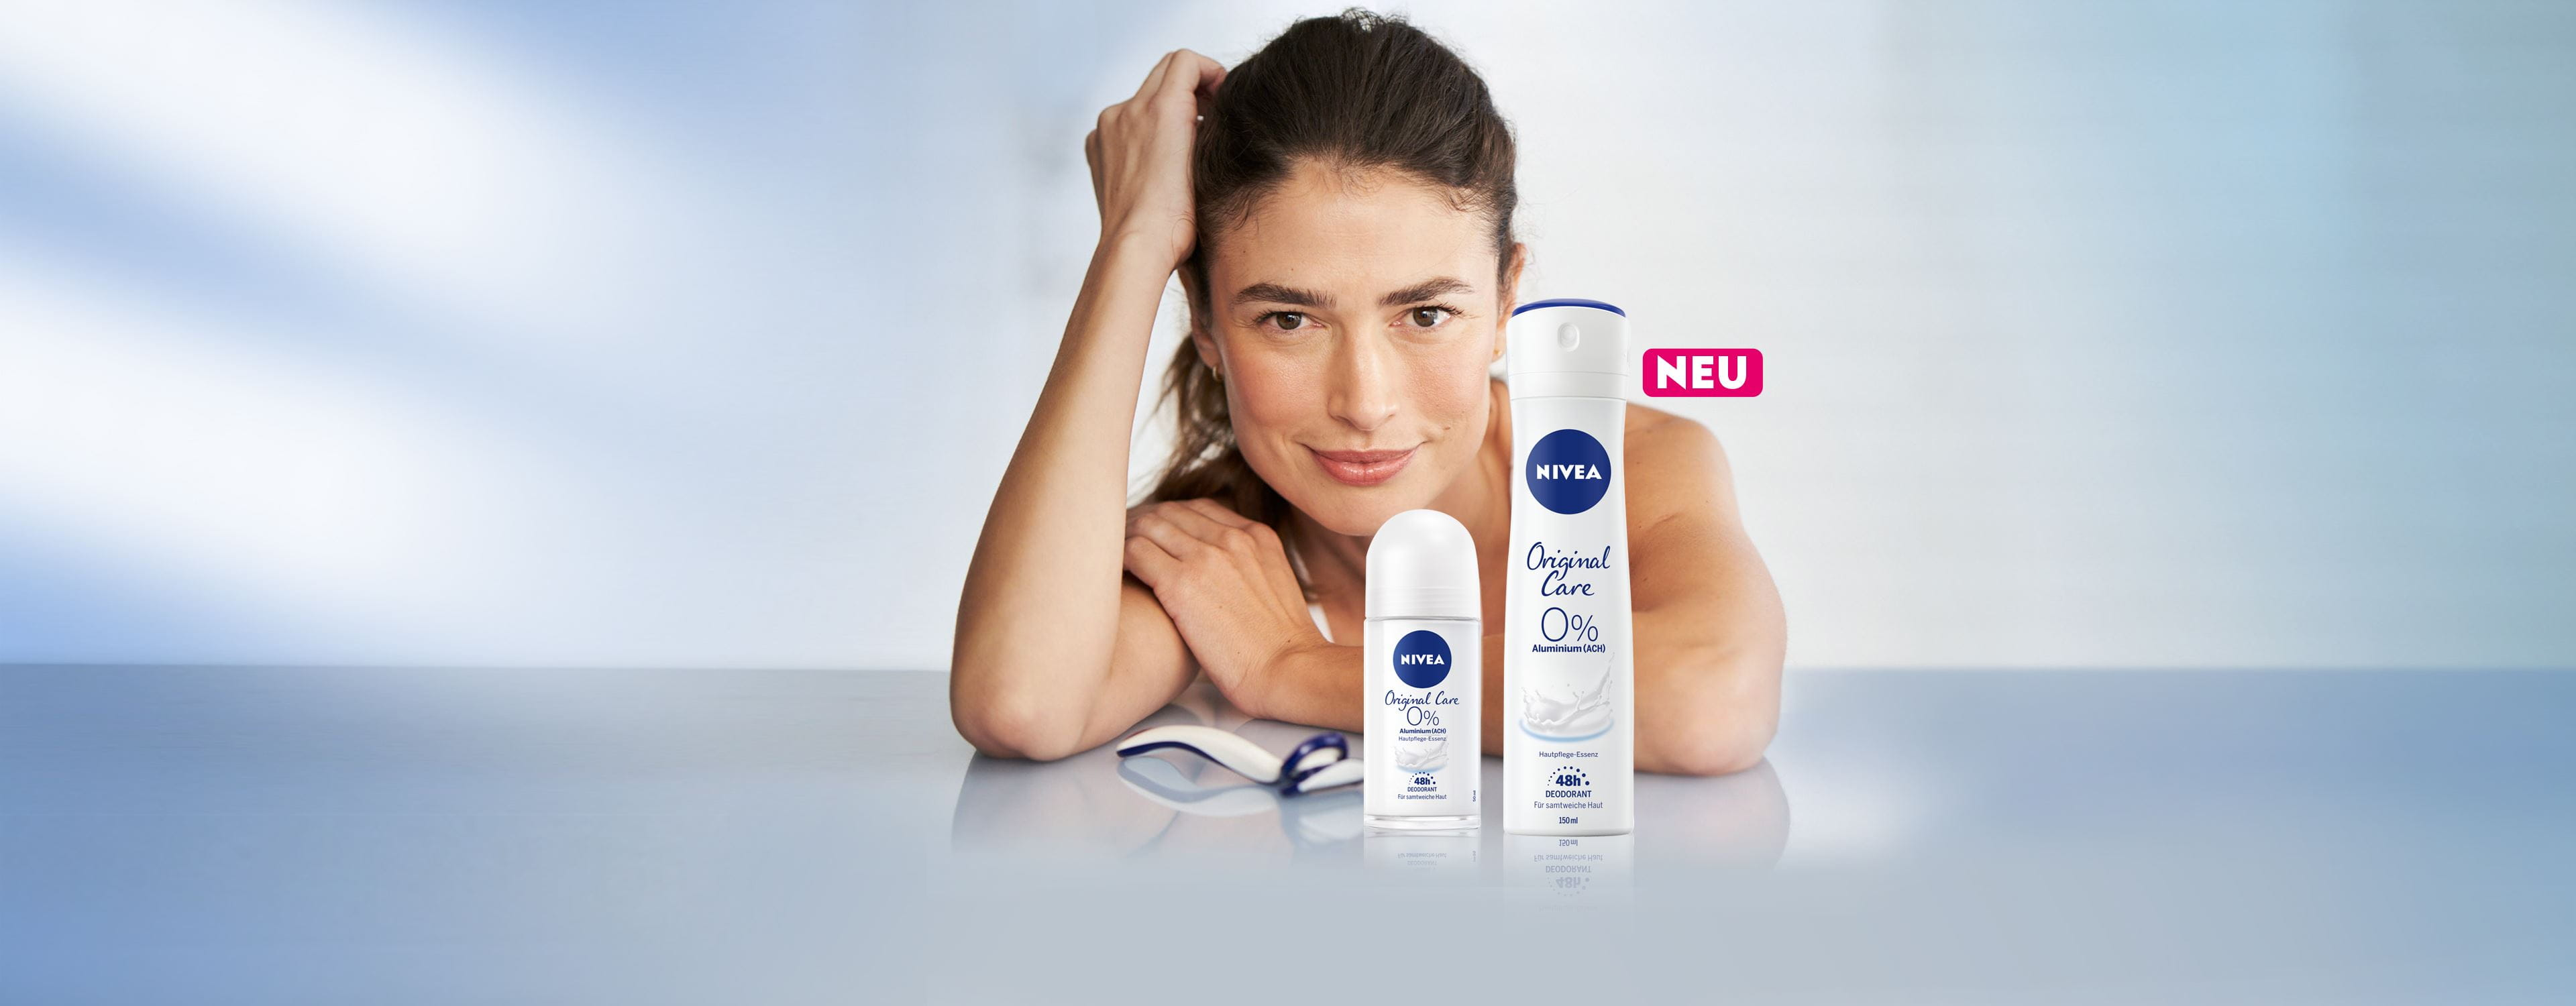 NIVEA Deo Original Care